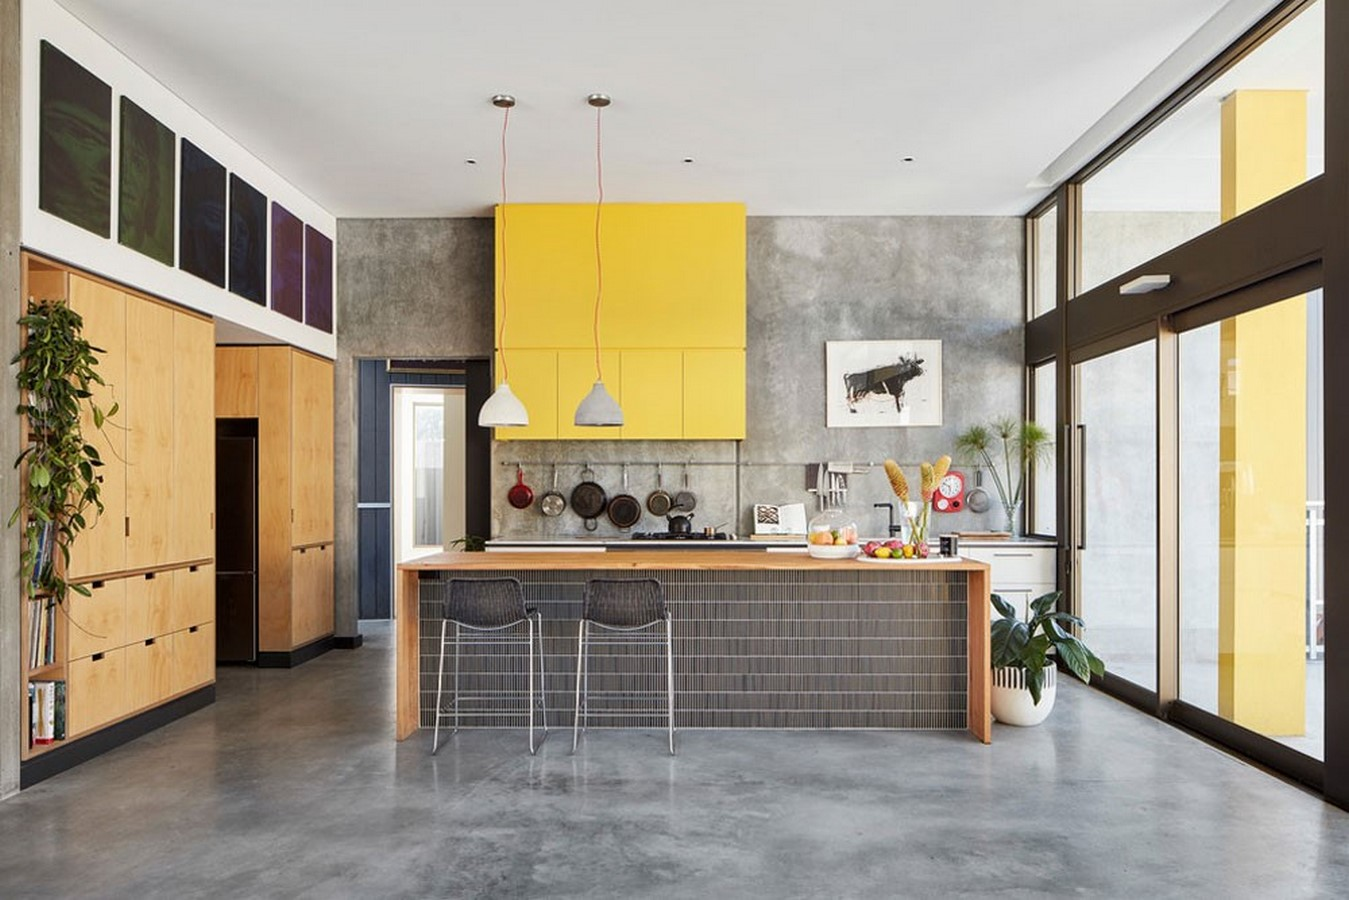 10 Tips to Renovate your House without hampering your budget - Sheet8